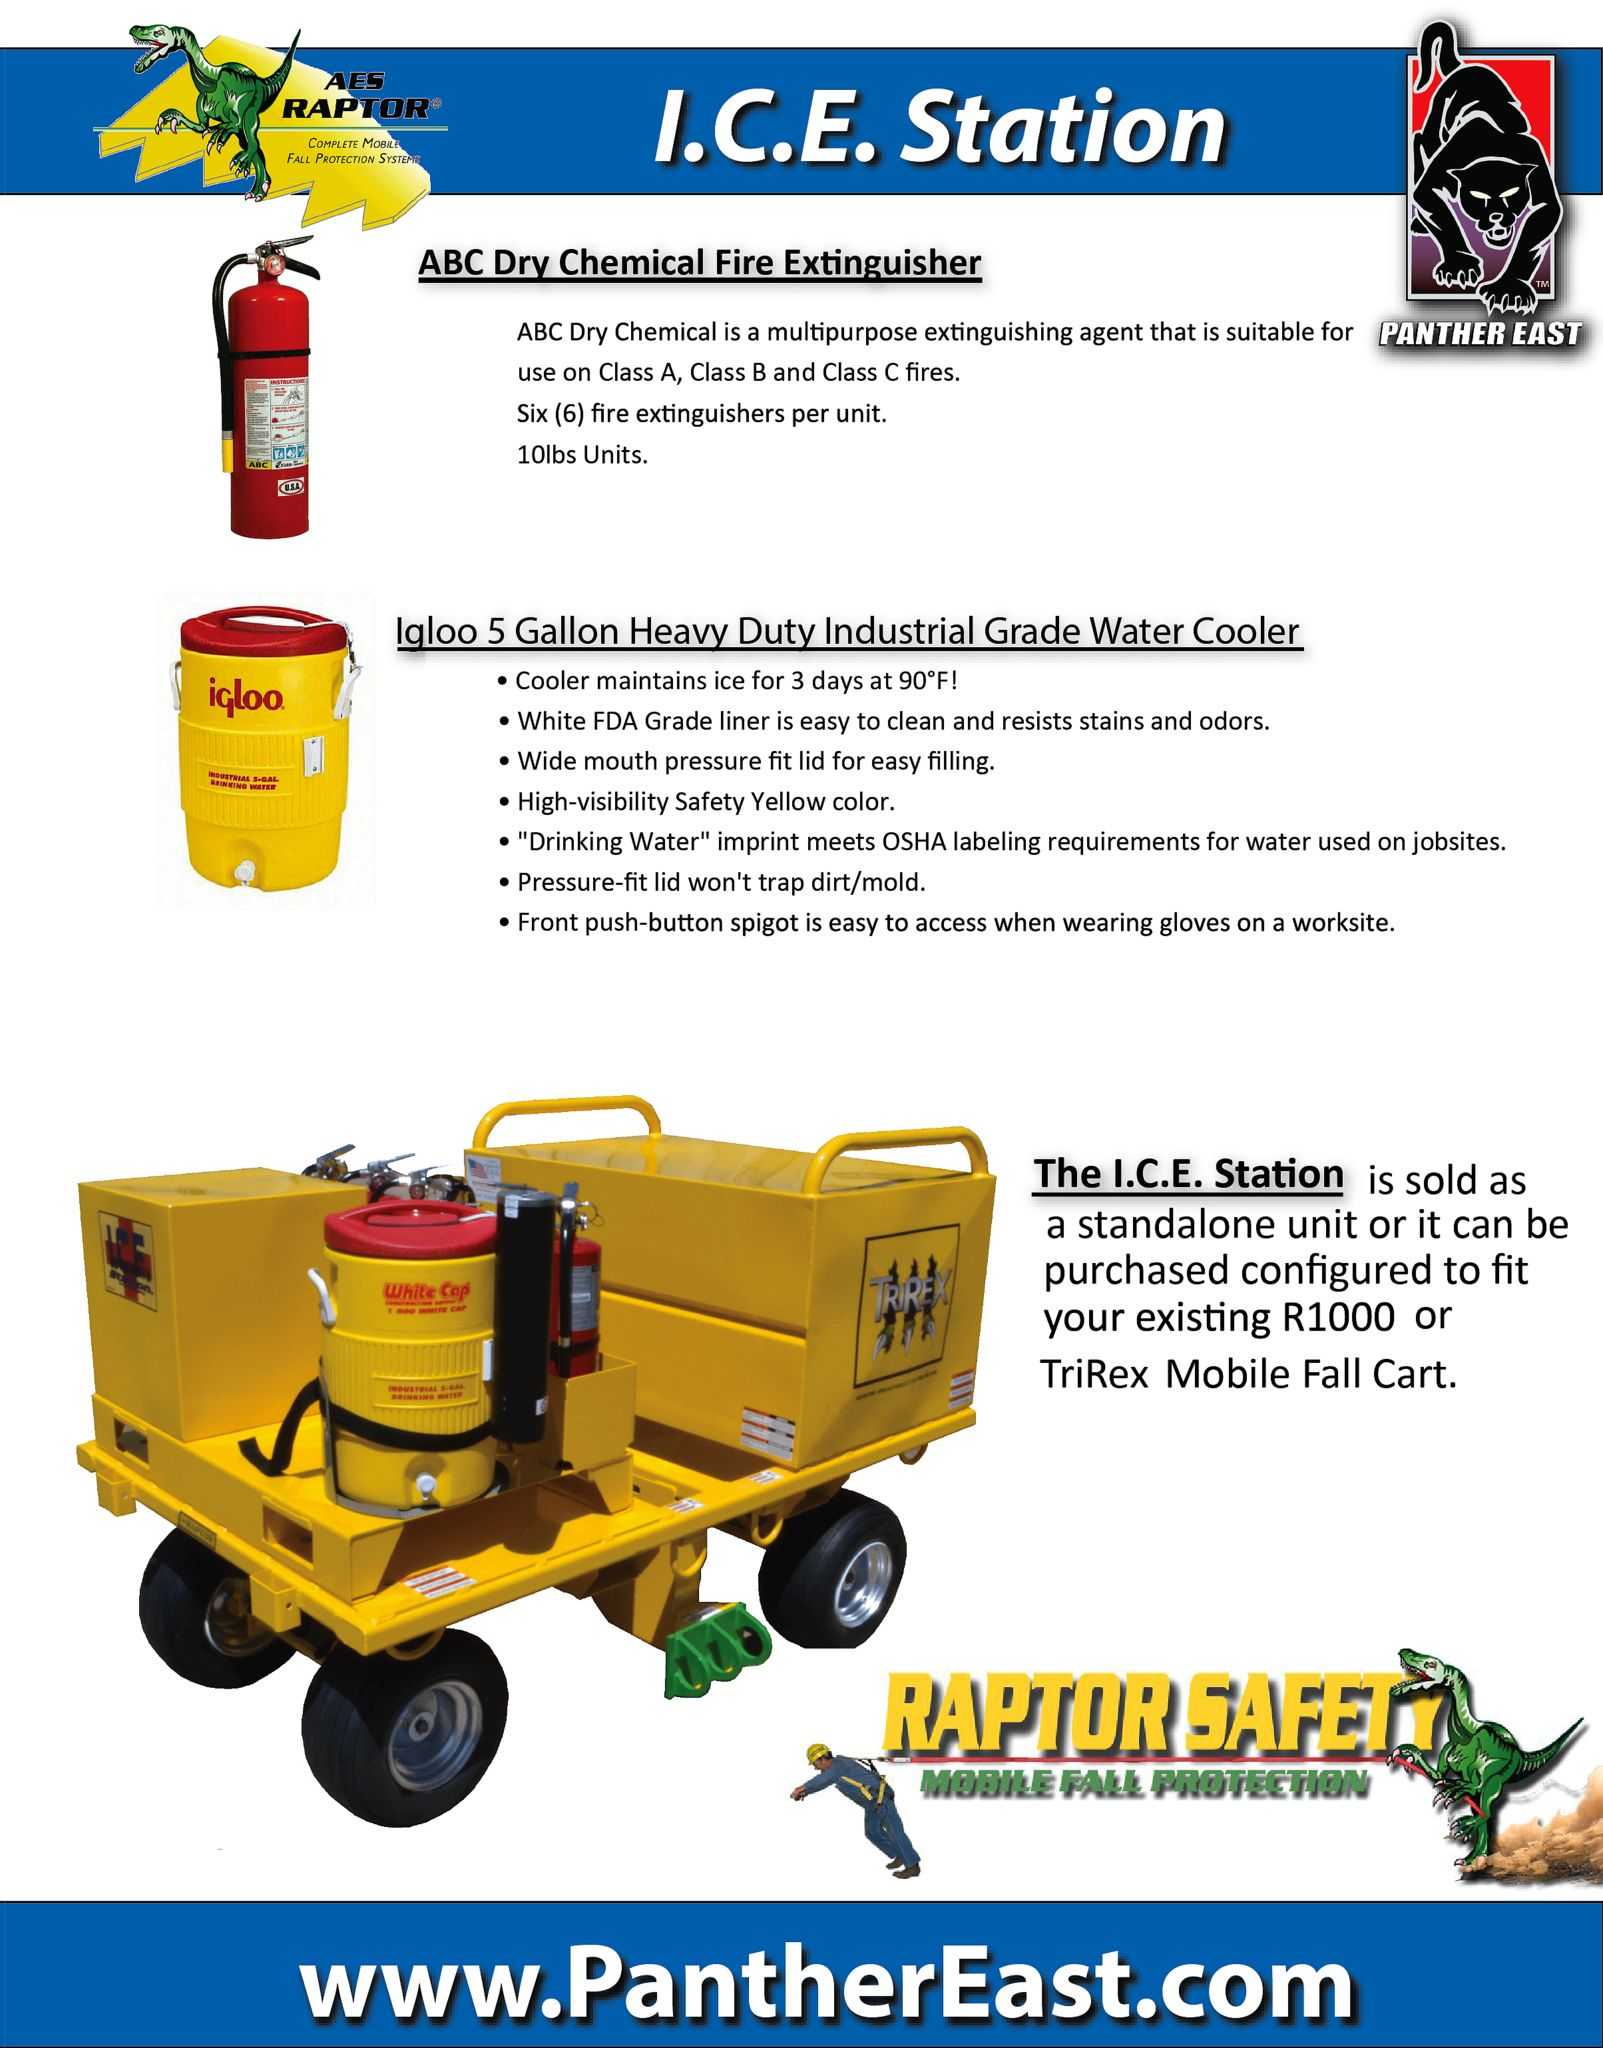 AES RAPTOR ICE STATION THE MOBILE SAFETY CART, EMERGENCY